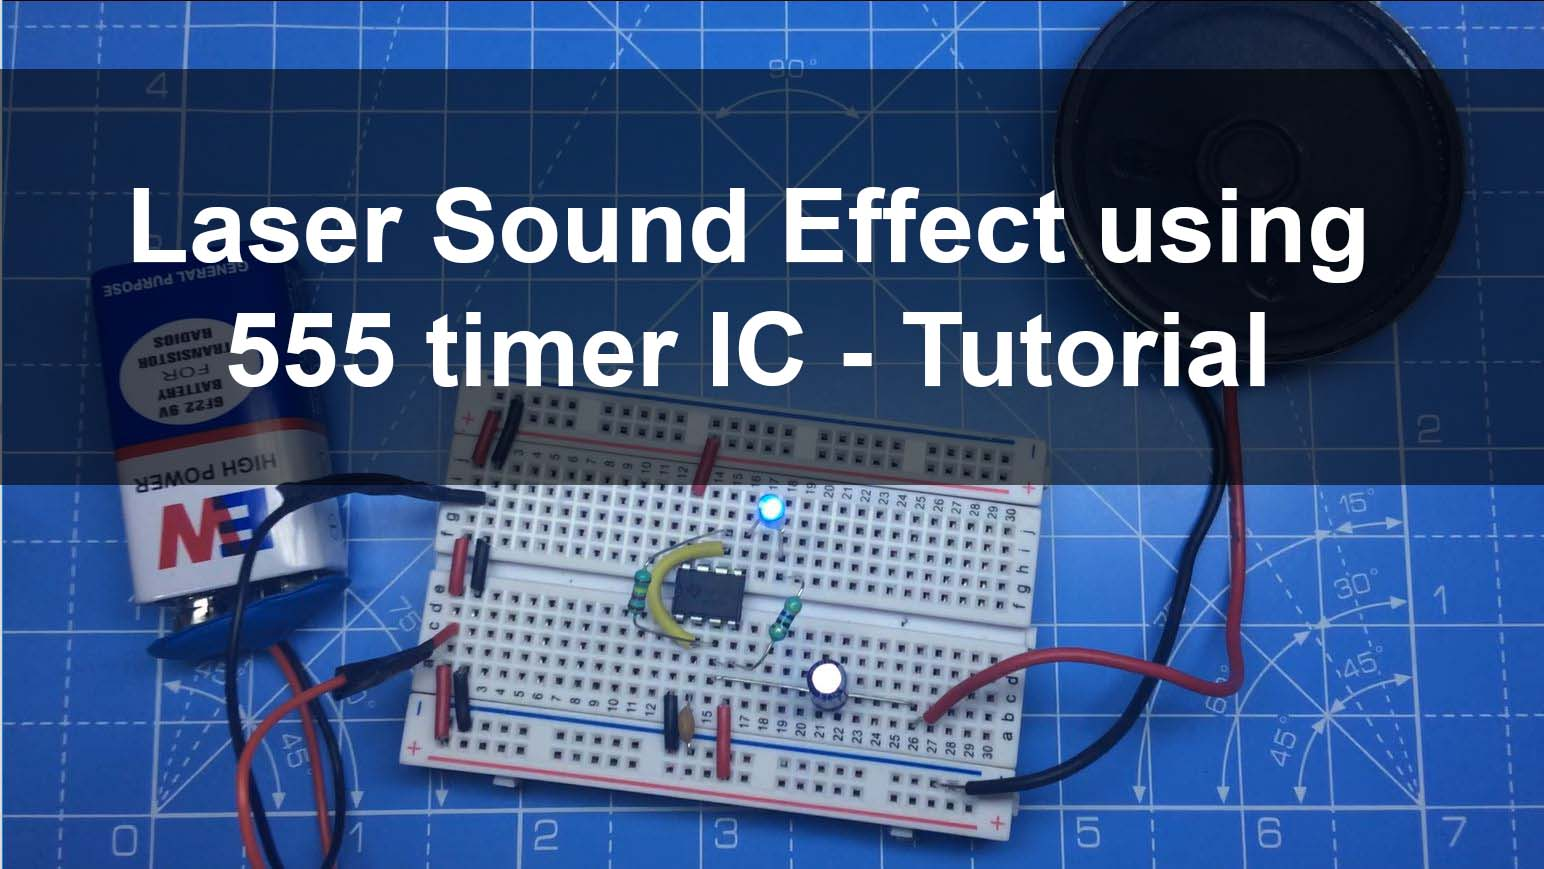 Laser sound and LED flash using 555 timer IC – Breadboard tutorial